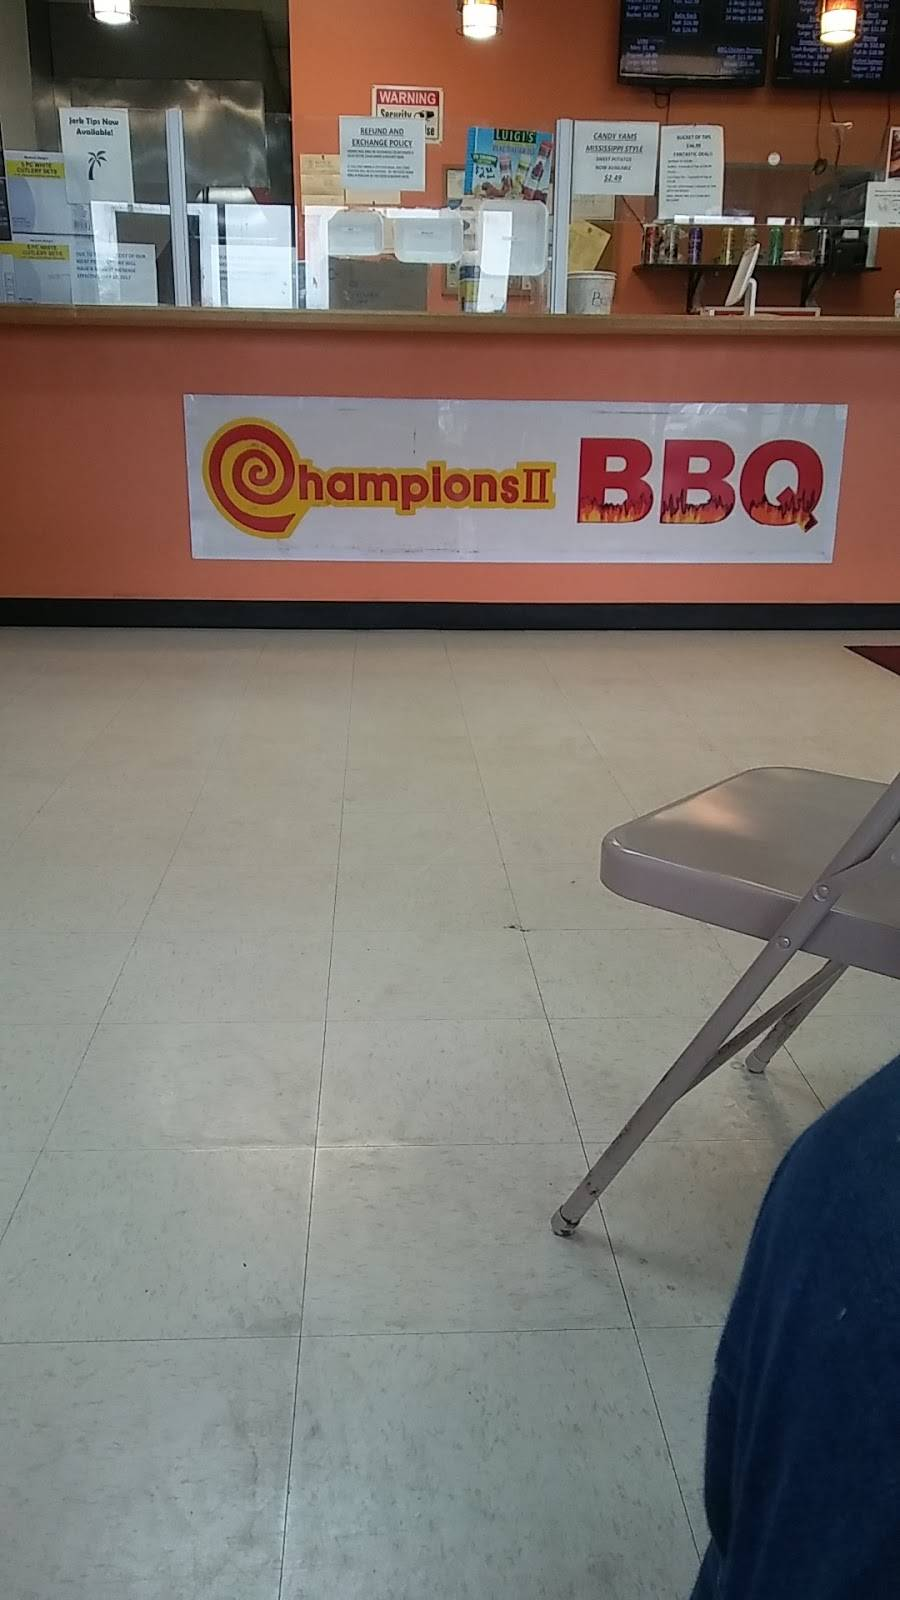 Champions II BBQ | restaurant | 17659 Torrence Ave, Lansing, IL 60438, USA | 7084184408 OR +1 708-418-4408